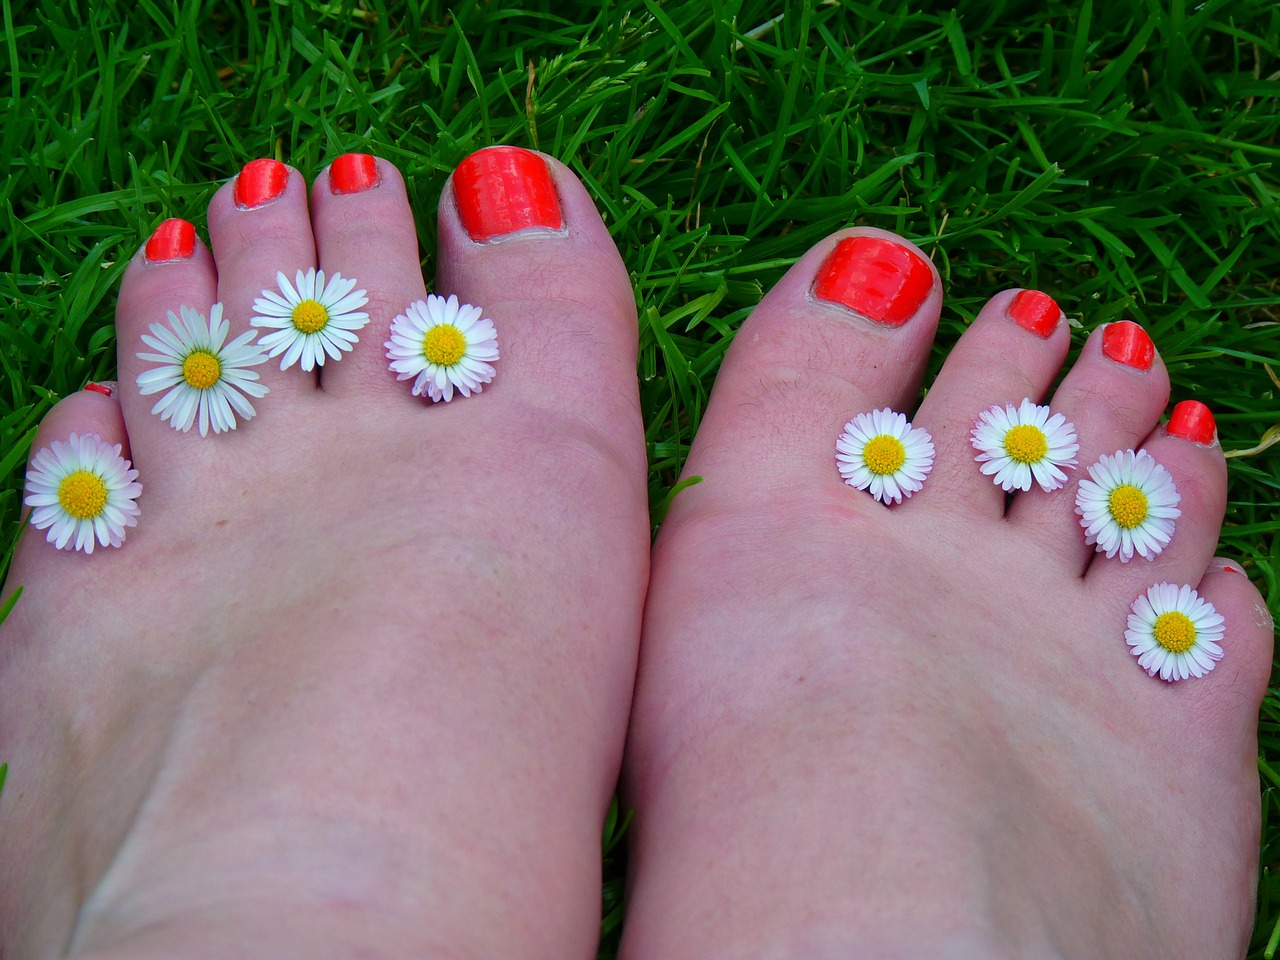 Foot having red nail polish and a flower on each toes